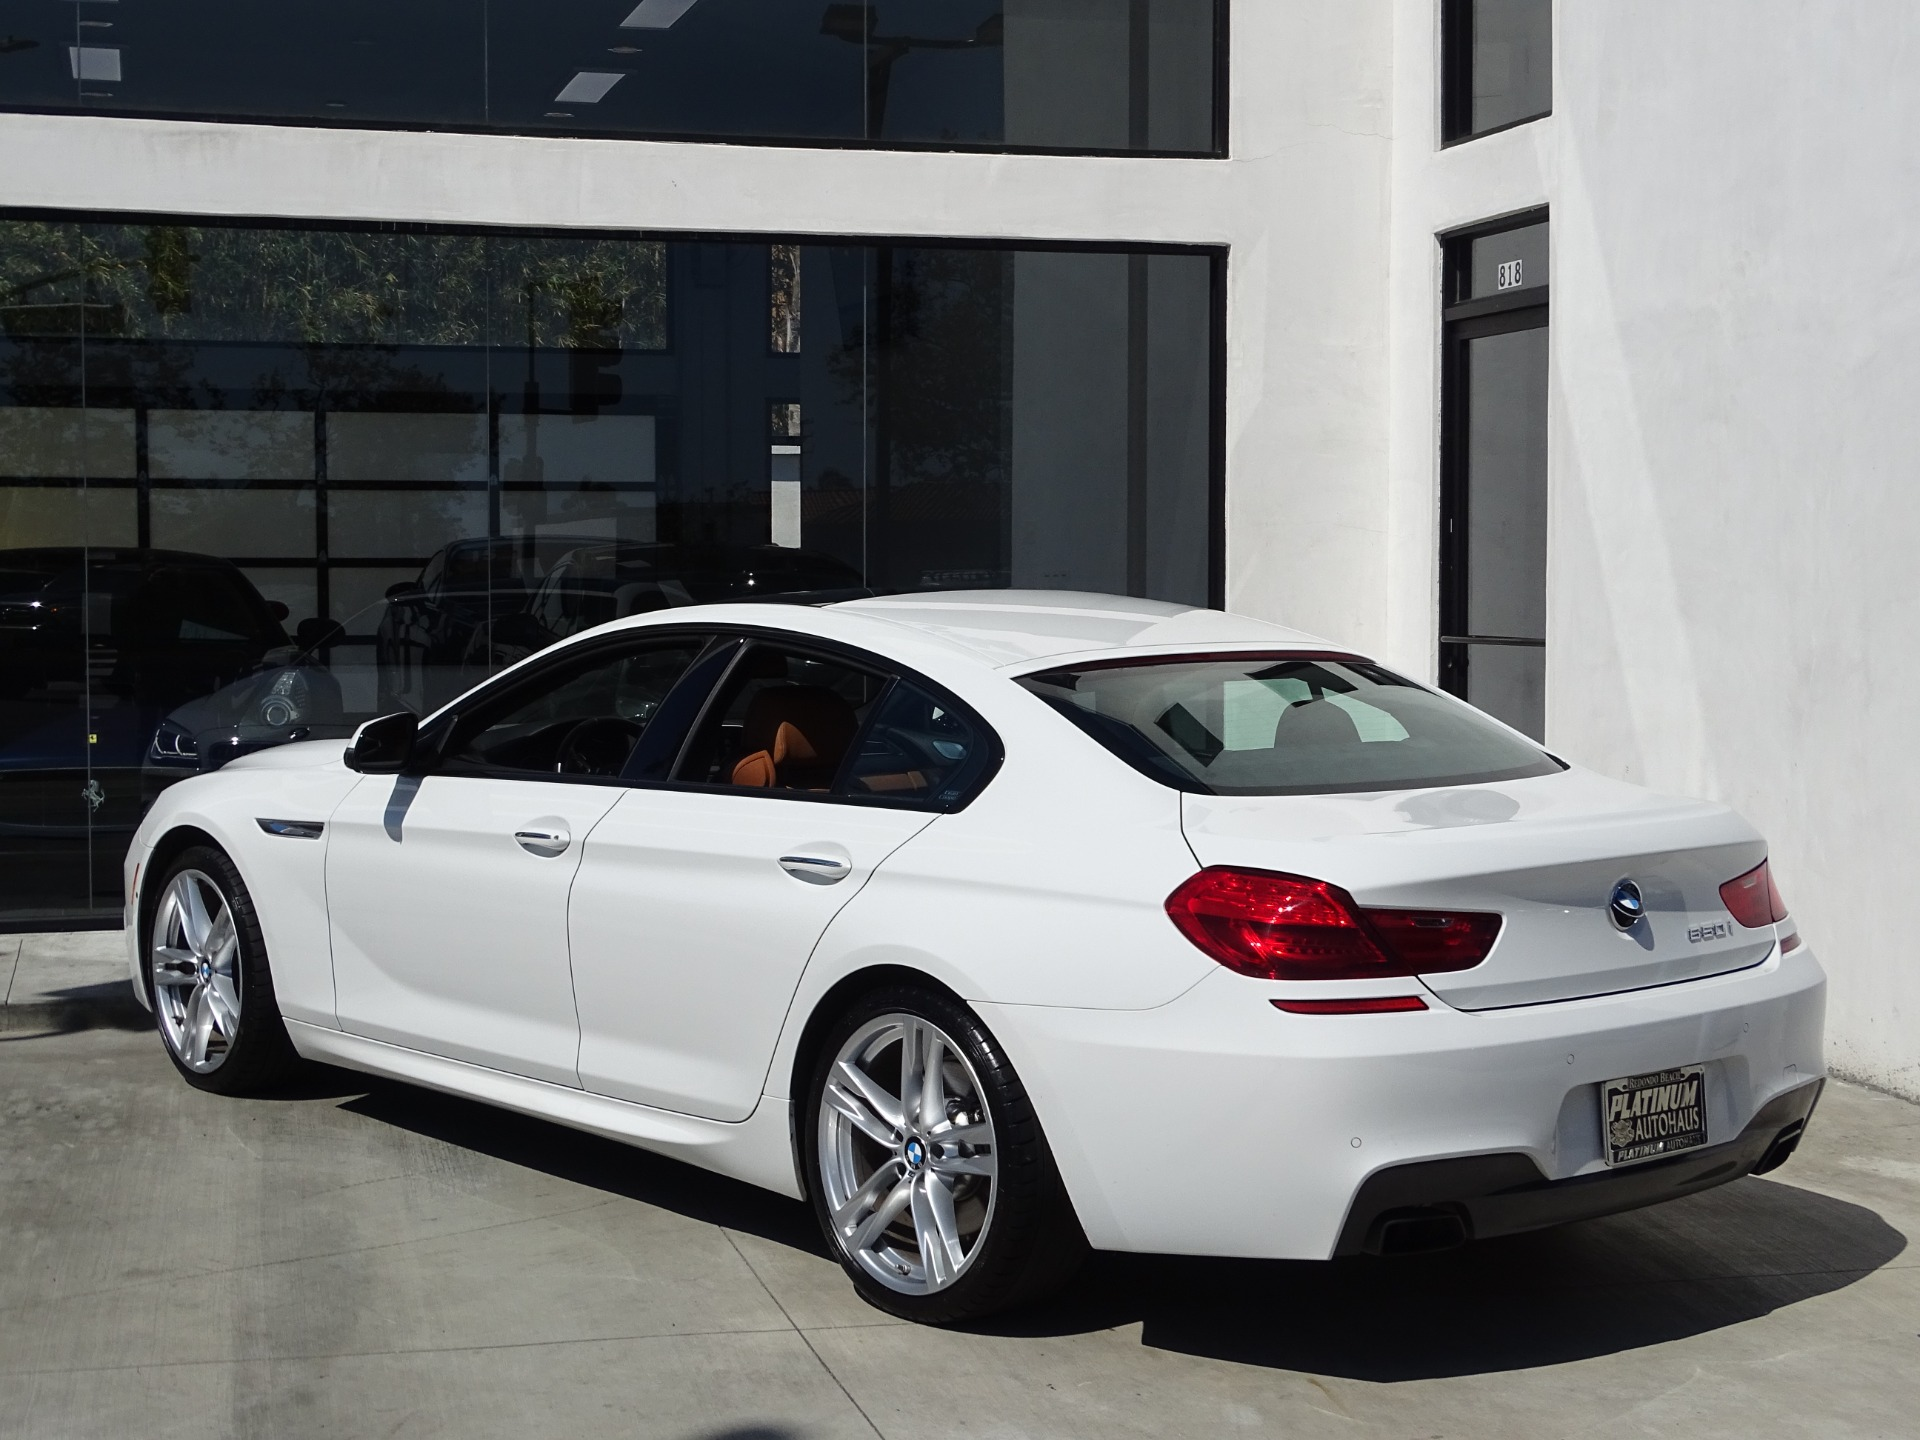 Bmw For Sale Near Me >> 2016 BMW 6 Series 650i Gran Coupe Stock # 6523 for sale near Redondo Beach, CA | CA BMW Dealer